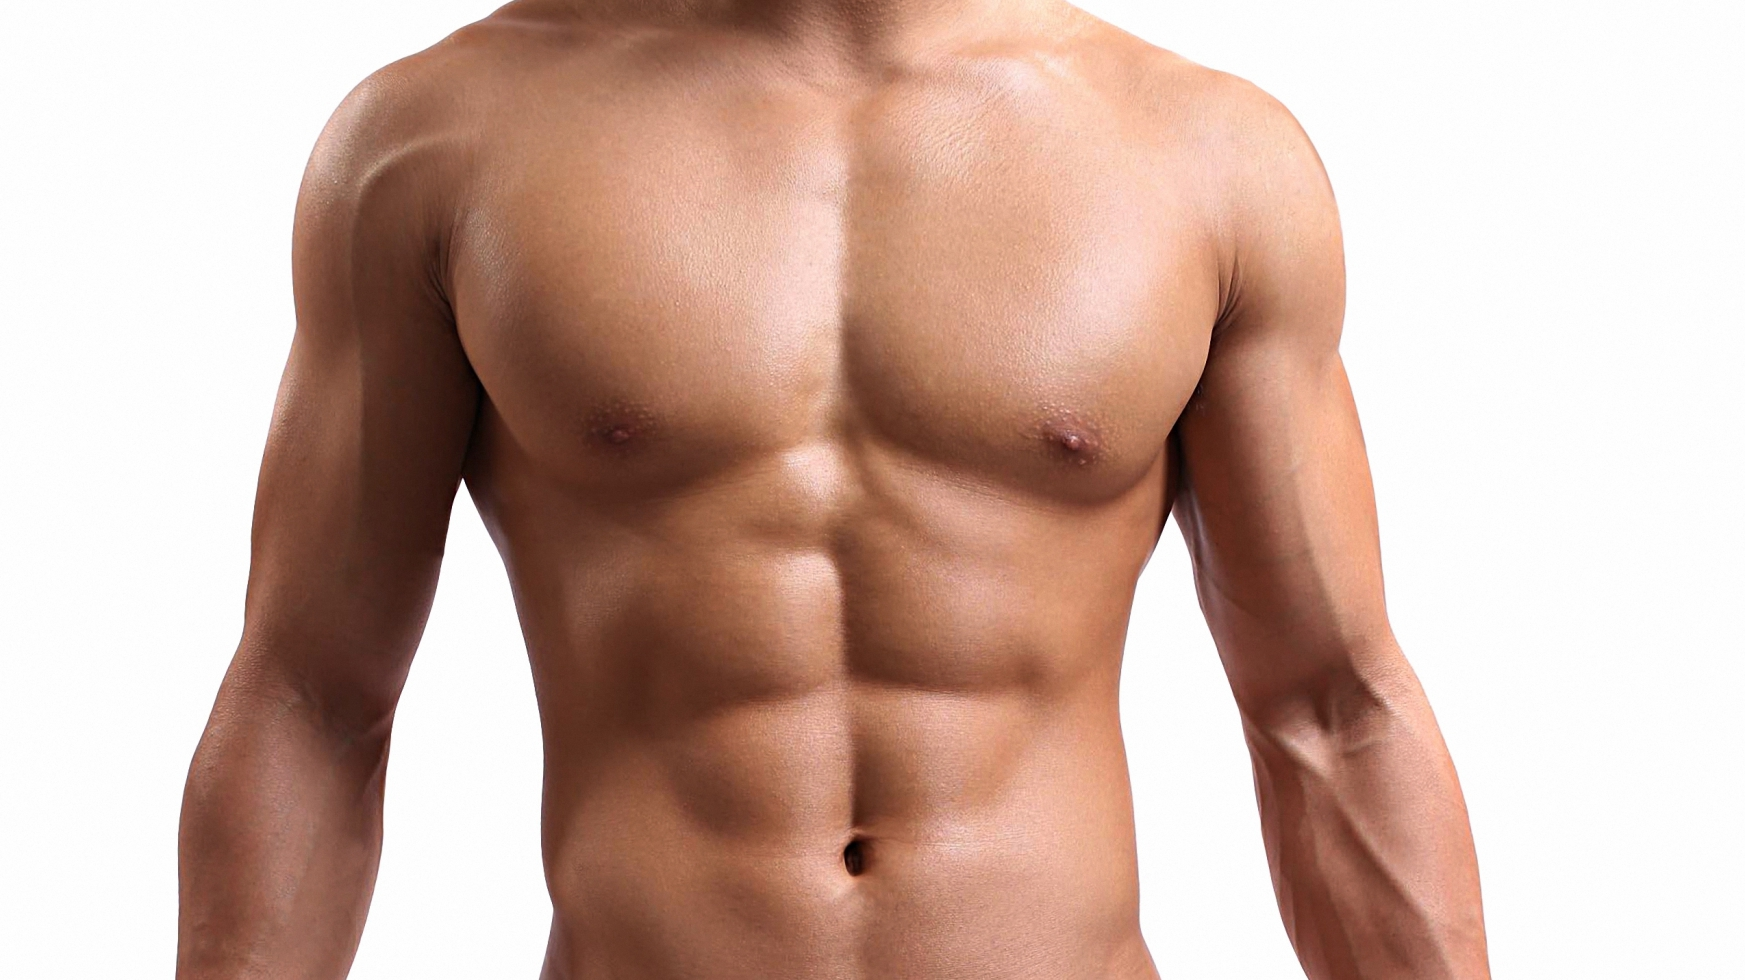 how to get muscle definition in abs